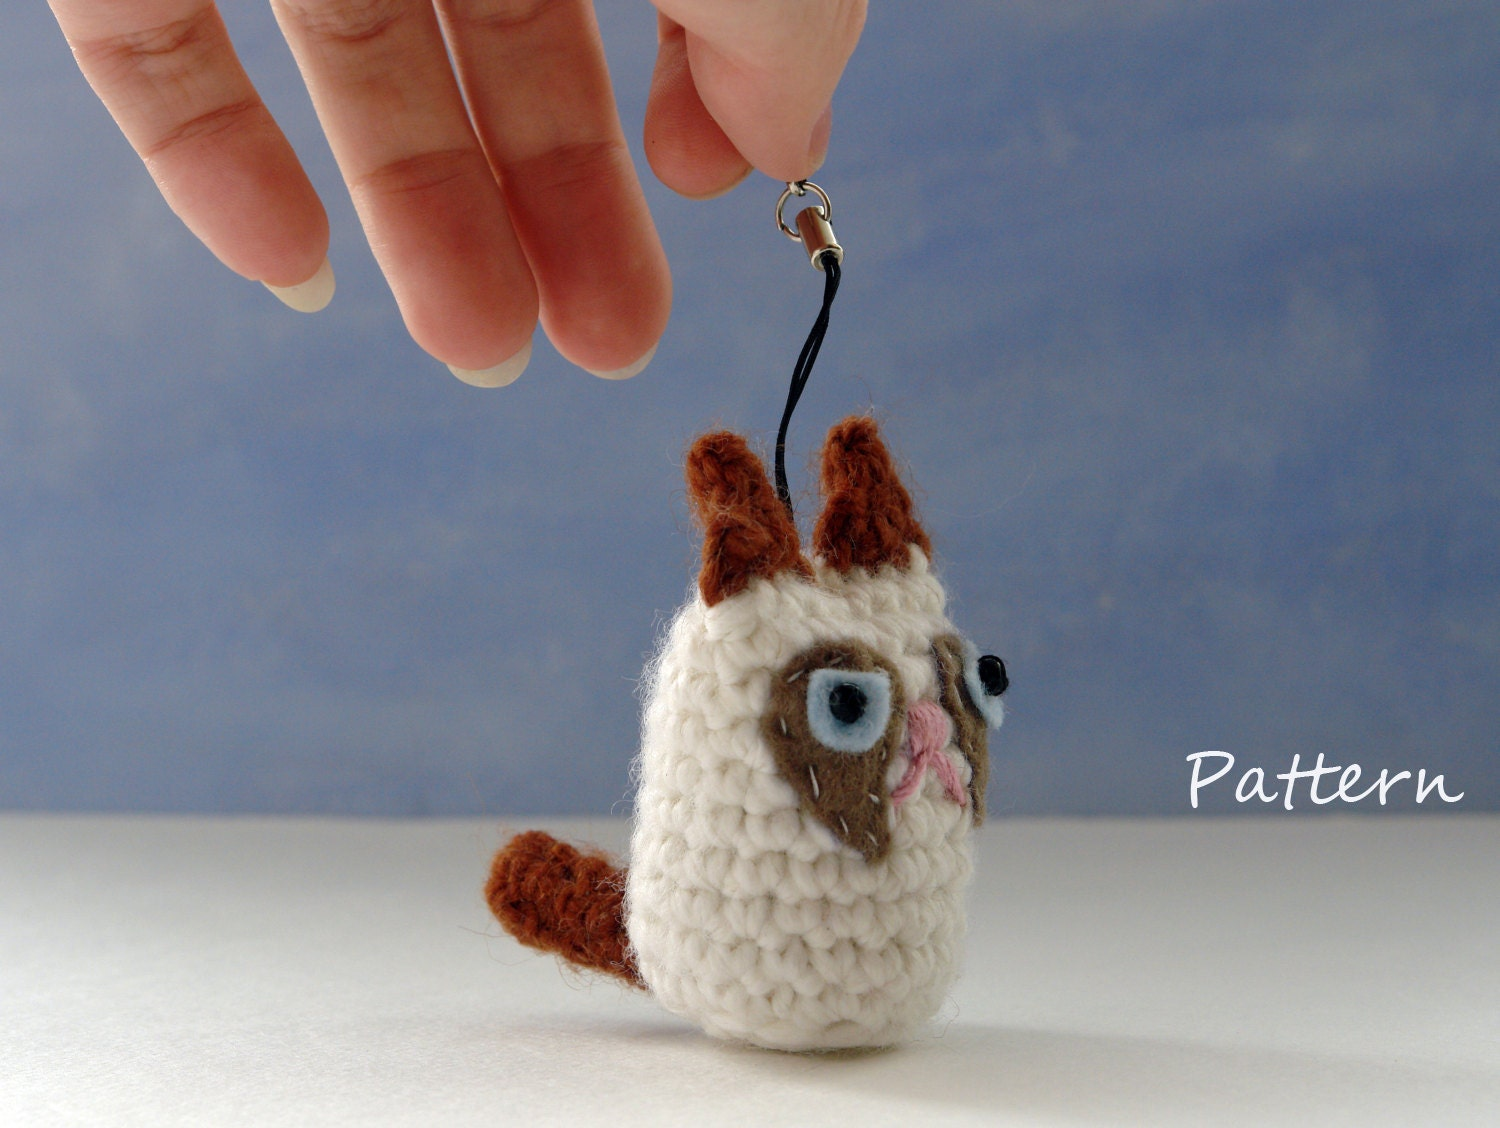 Amigurumi Crochet Keychain : Cat amigurumi crochet pattern for keychain